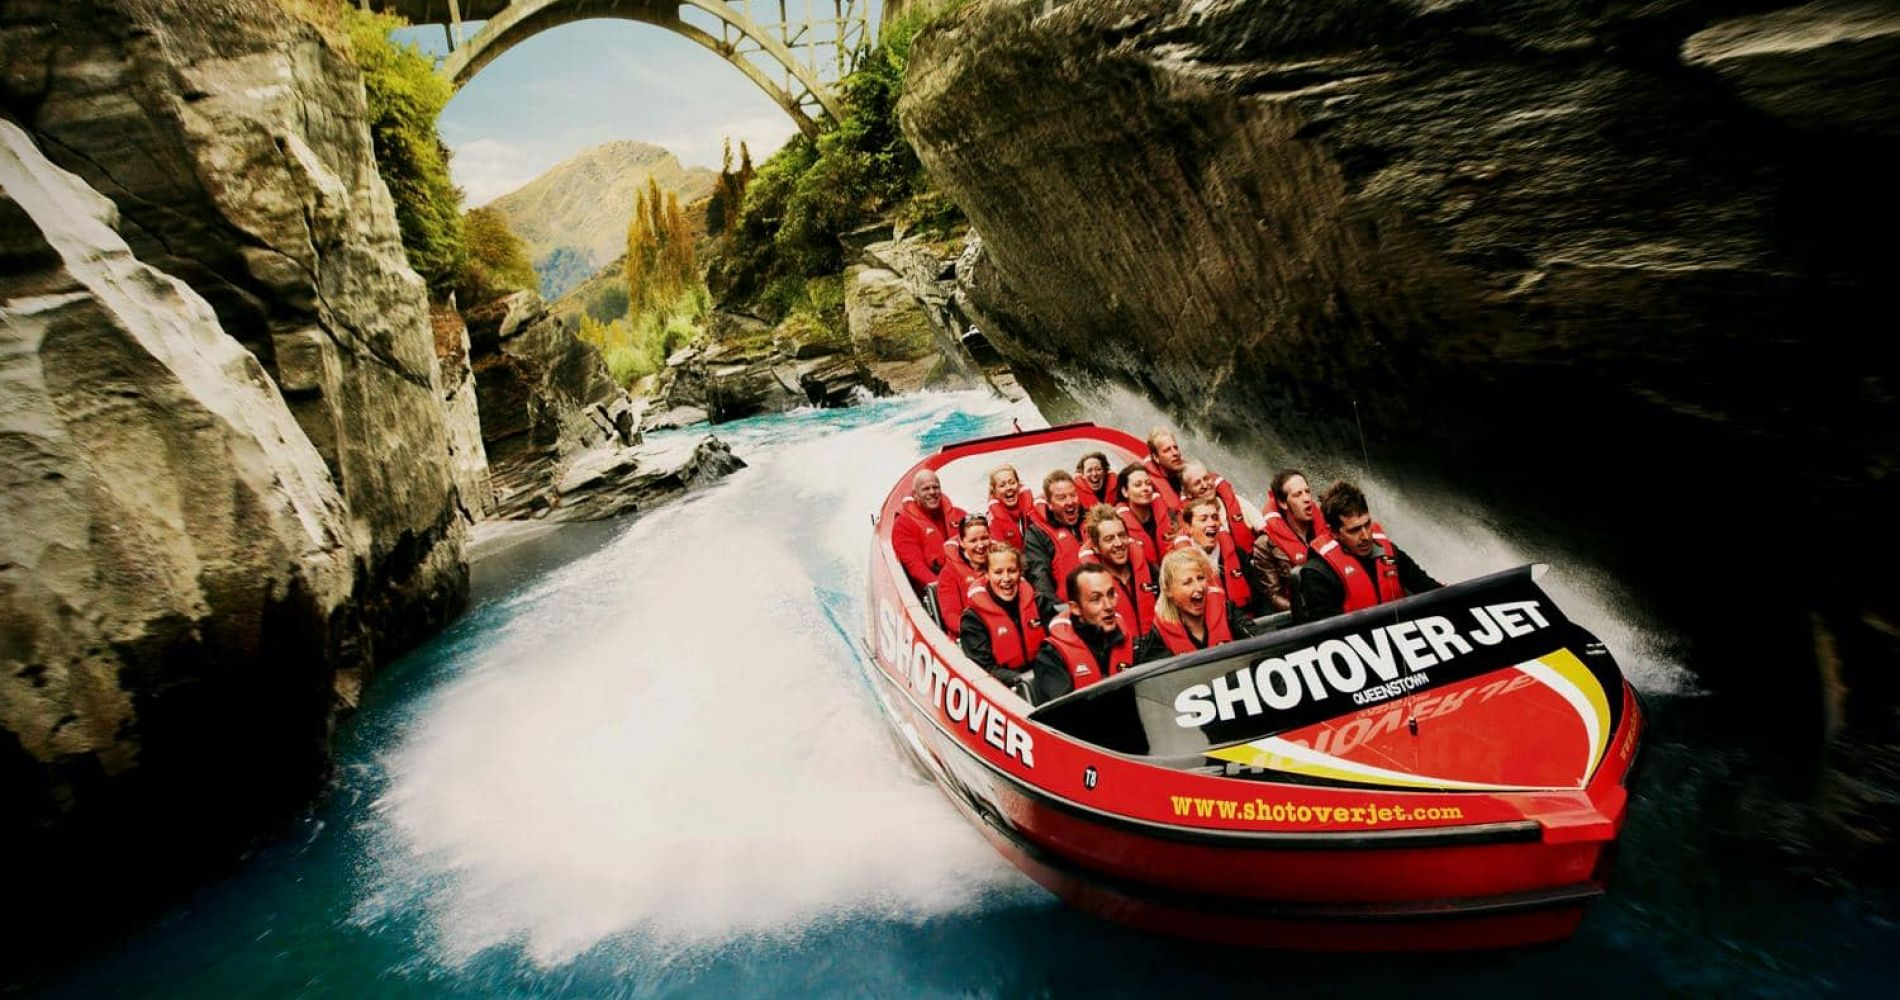 Jet Boat Experience for Two on Shotover River in New Zealand